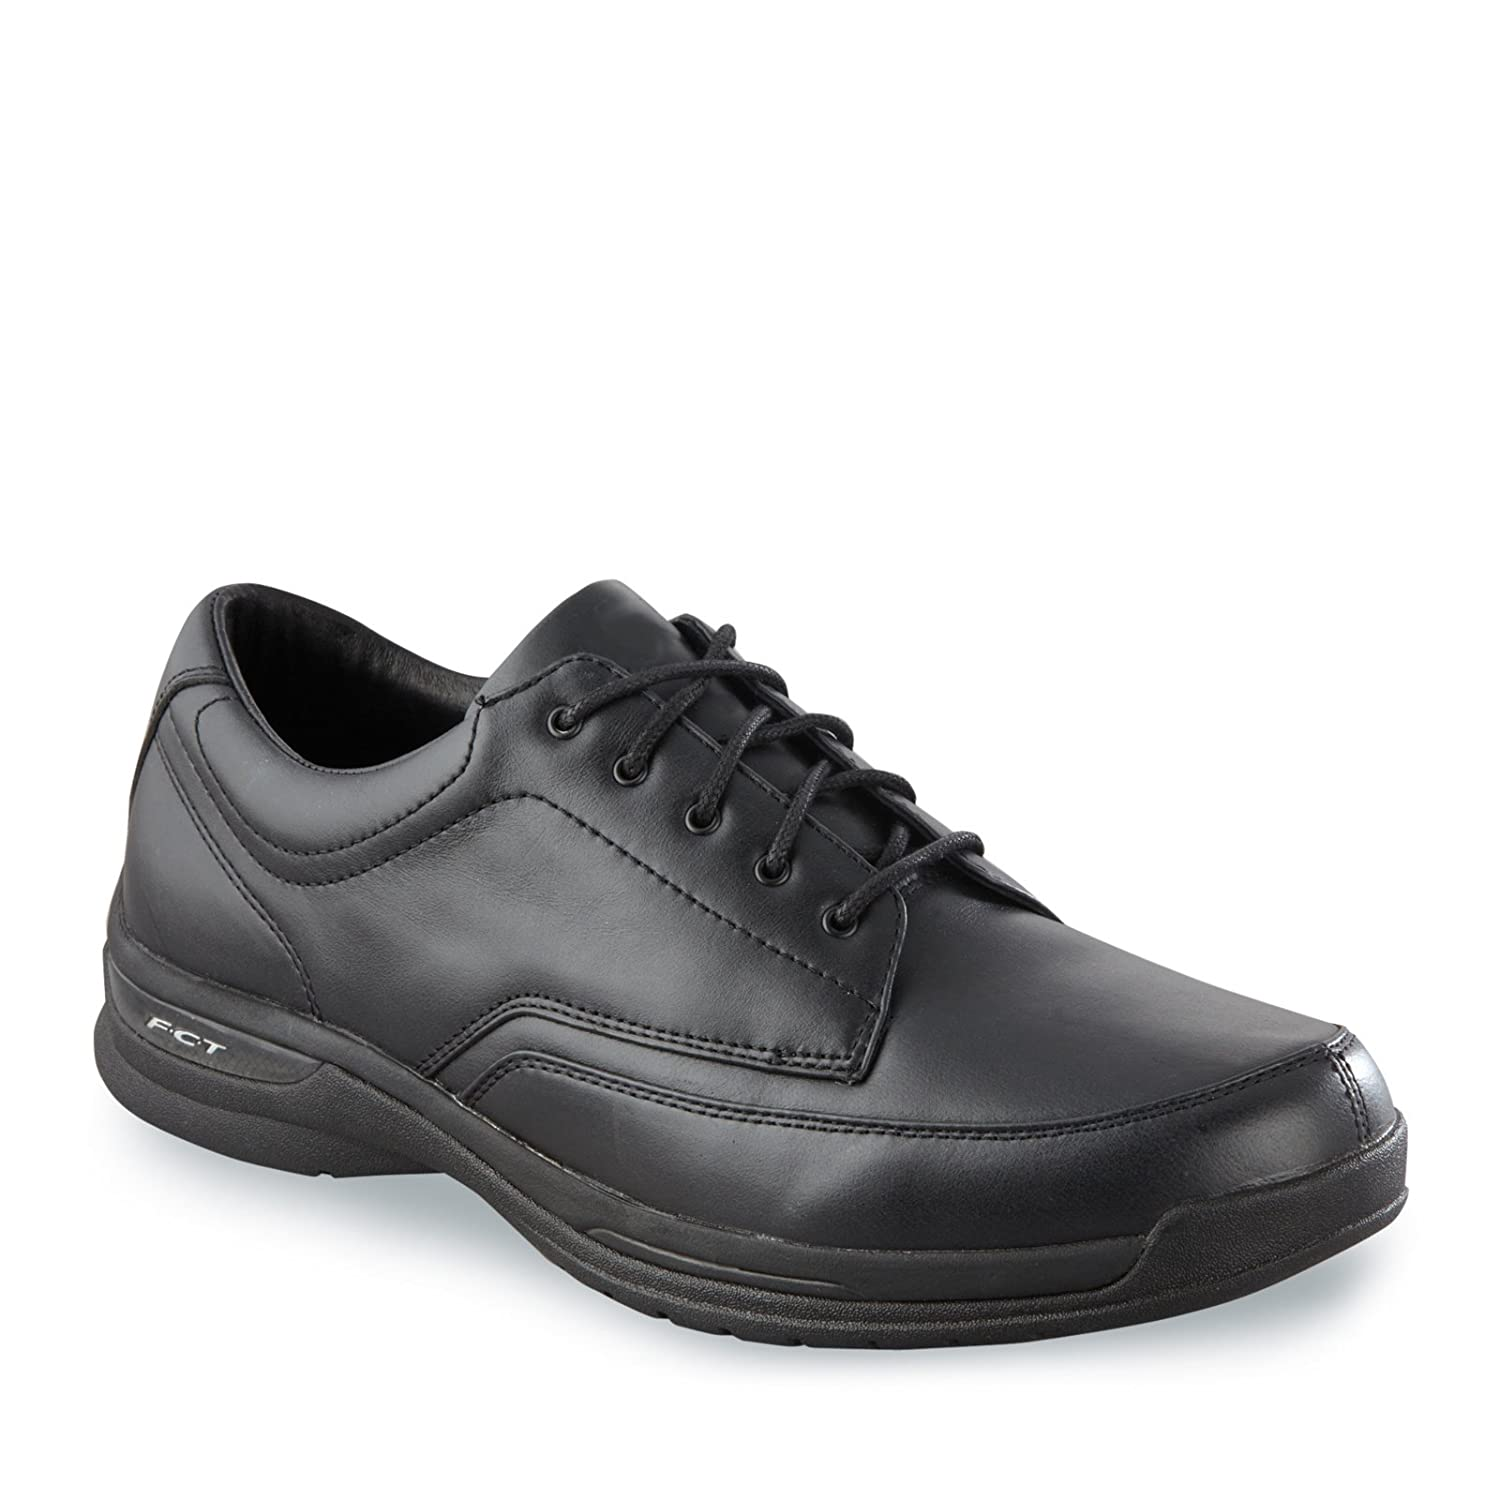 Oasis Mens Bodin Lace-Up Shoes Black